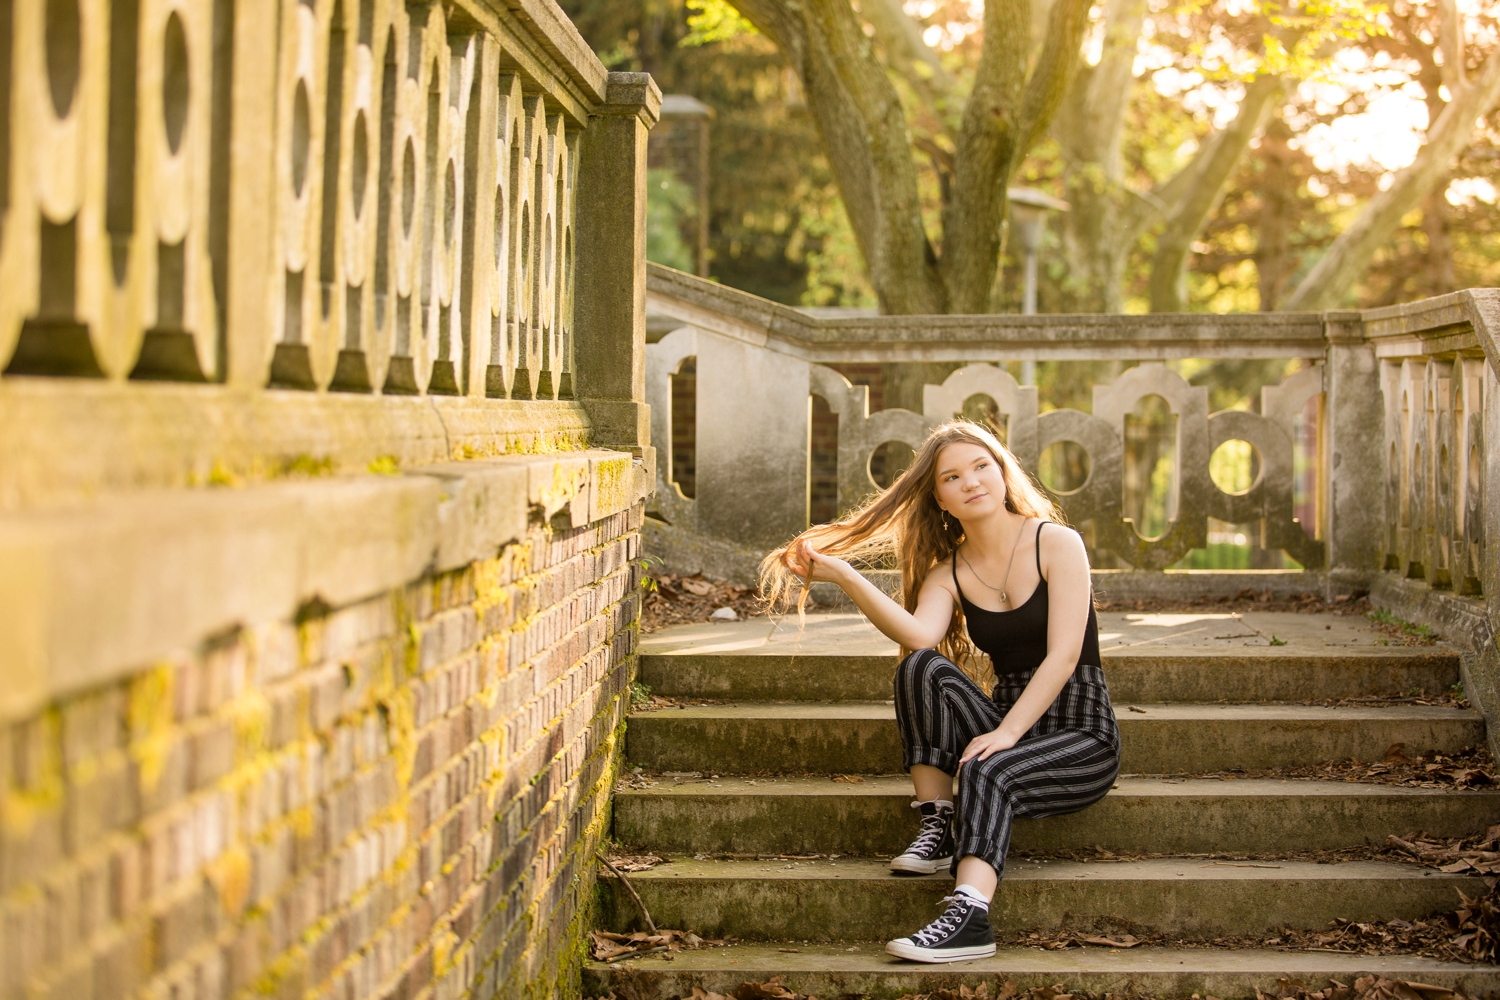 pittsburgh senior photographer, pittsburgh senior pictures, location ideas for senior photos, mellon park senior photos, phipps conservatory senior photos, places for photoshoot in pittsburgh